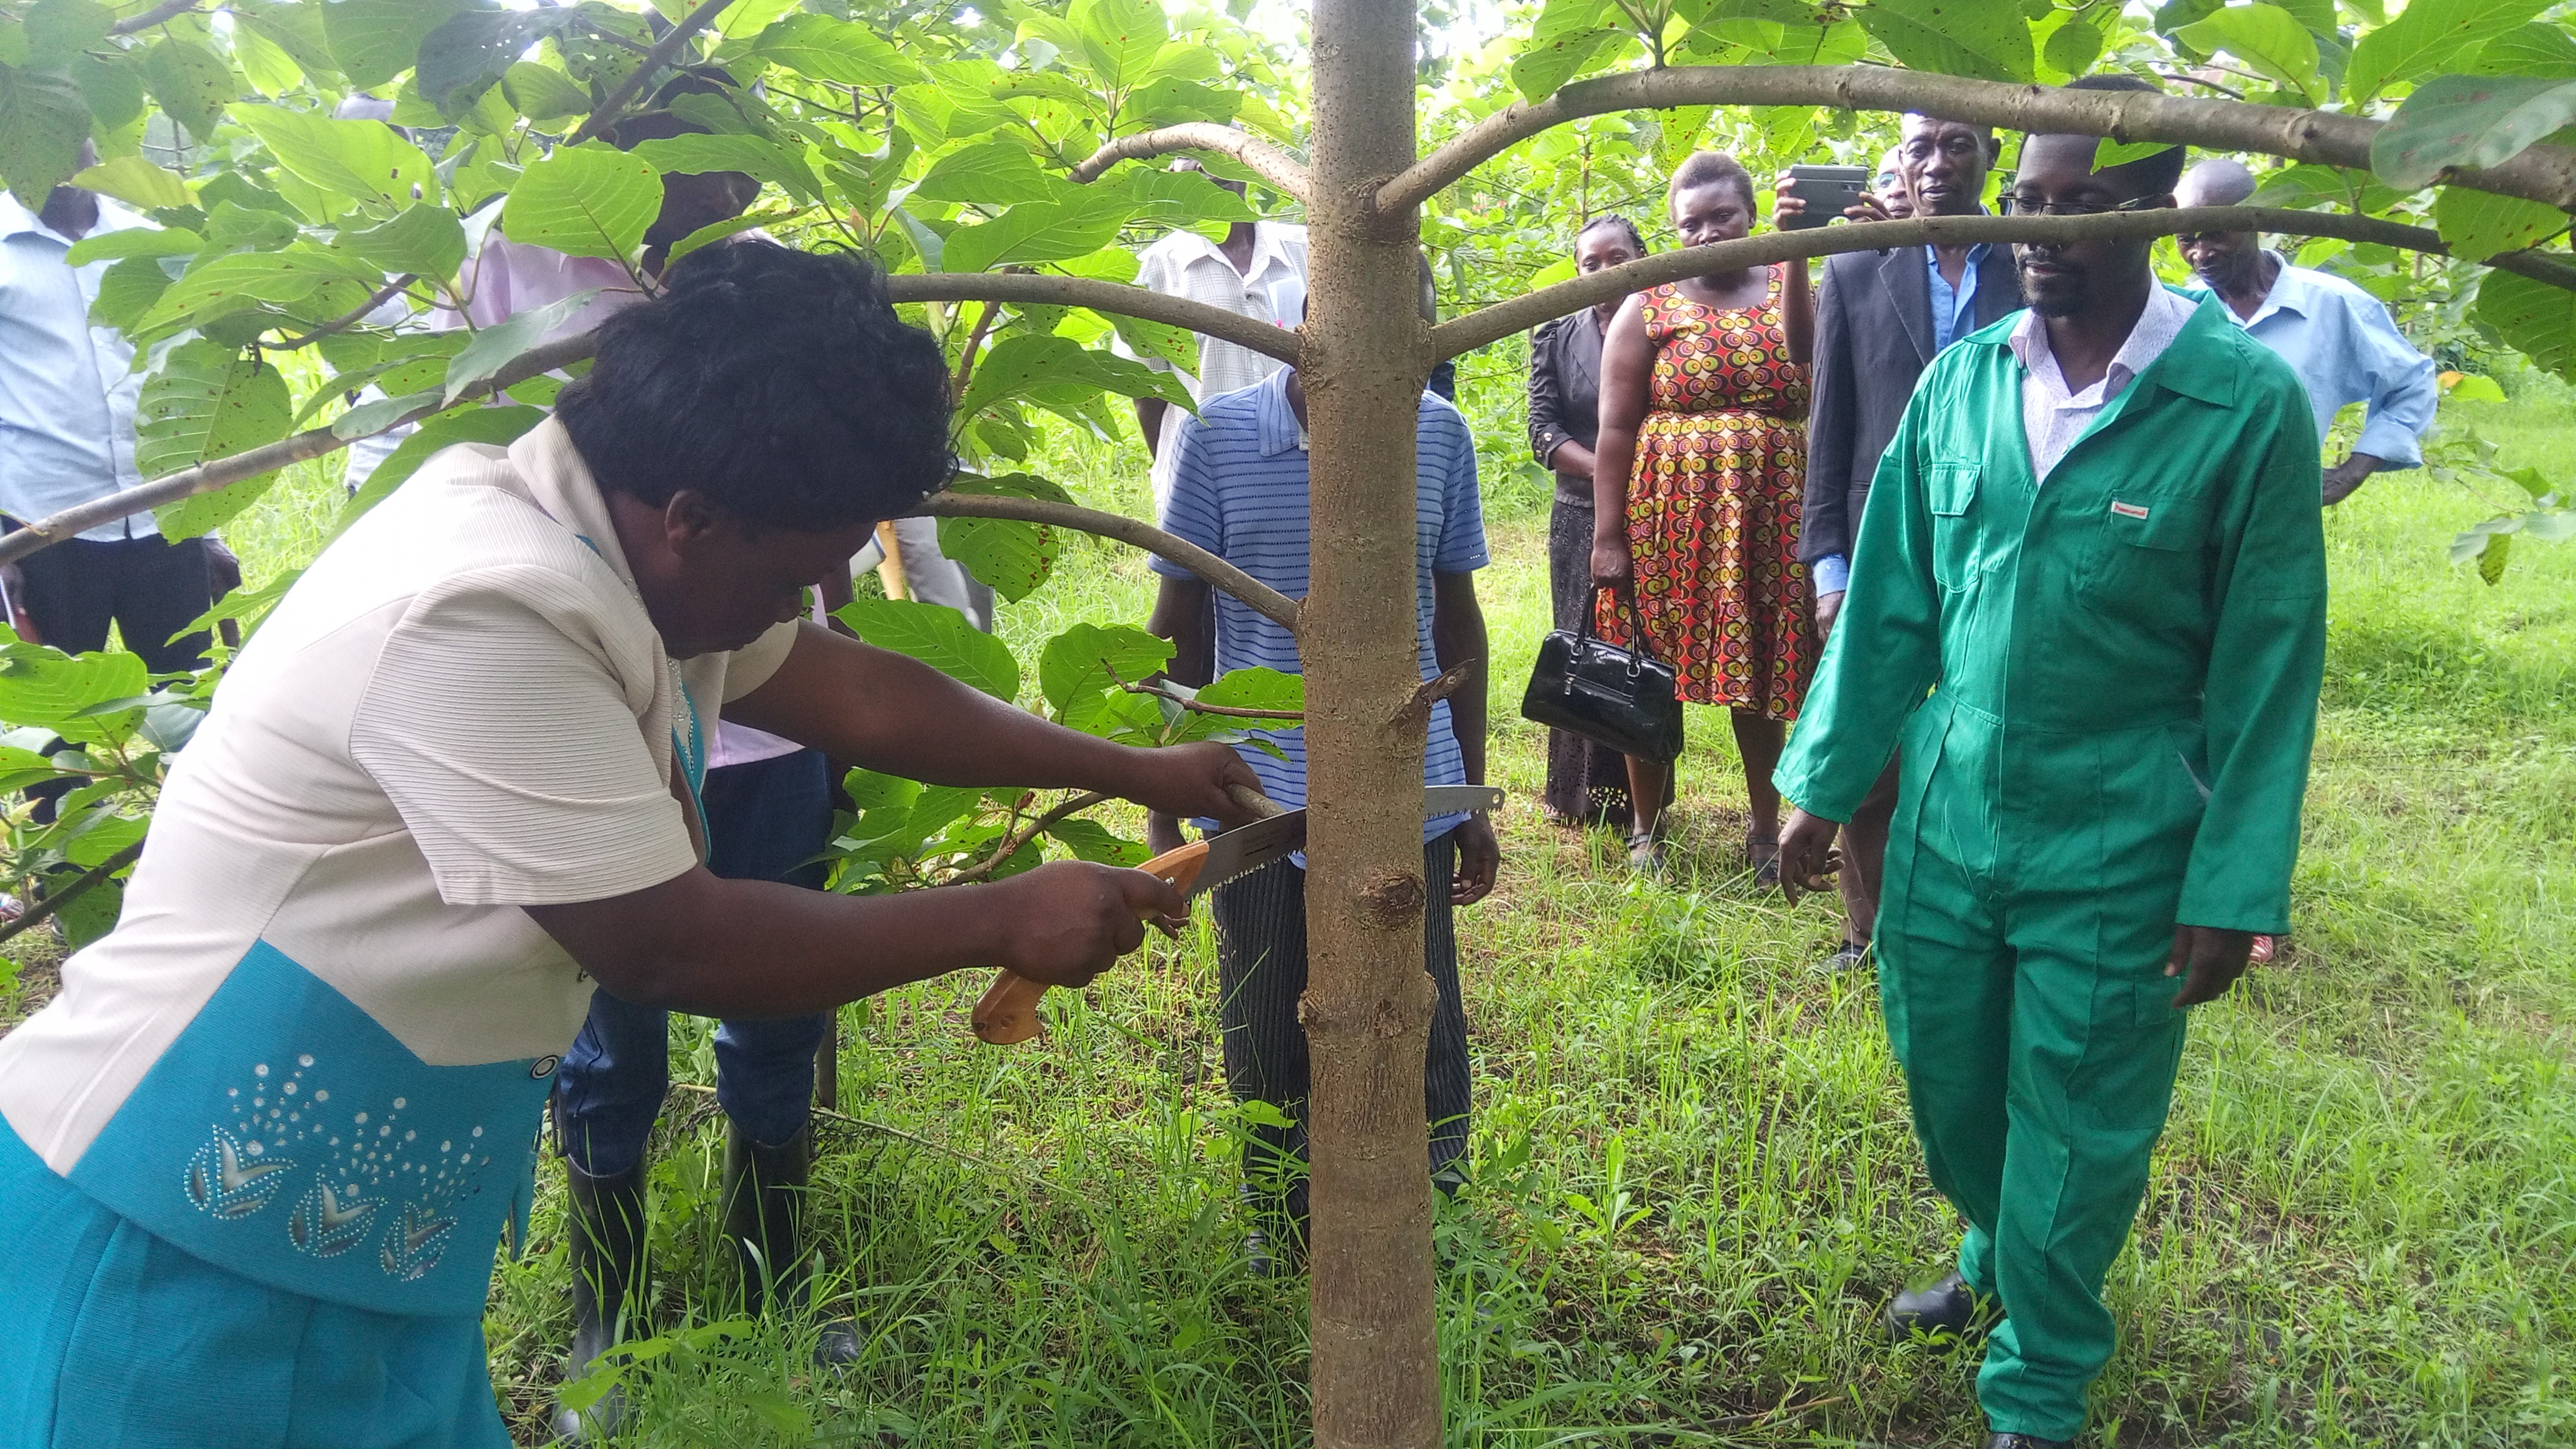 Practical session on proper pruning during one of the trainings for women and youth on agroforestry in Mount Elgon. Photo: National Forestry Resources Research Institute/ Charles Galabuzi